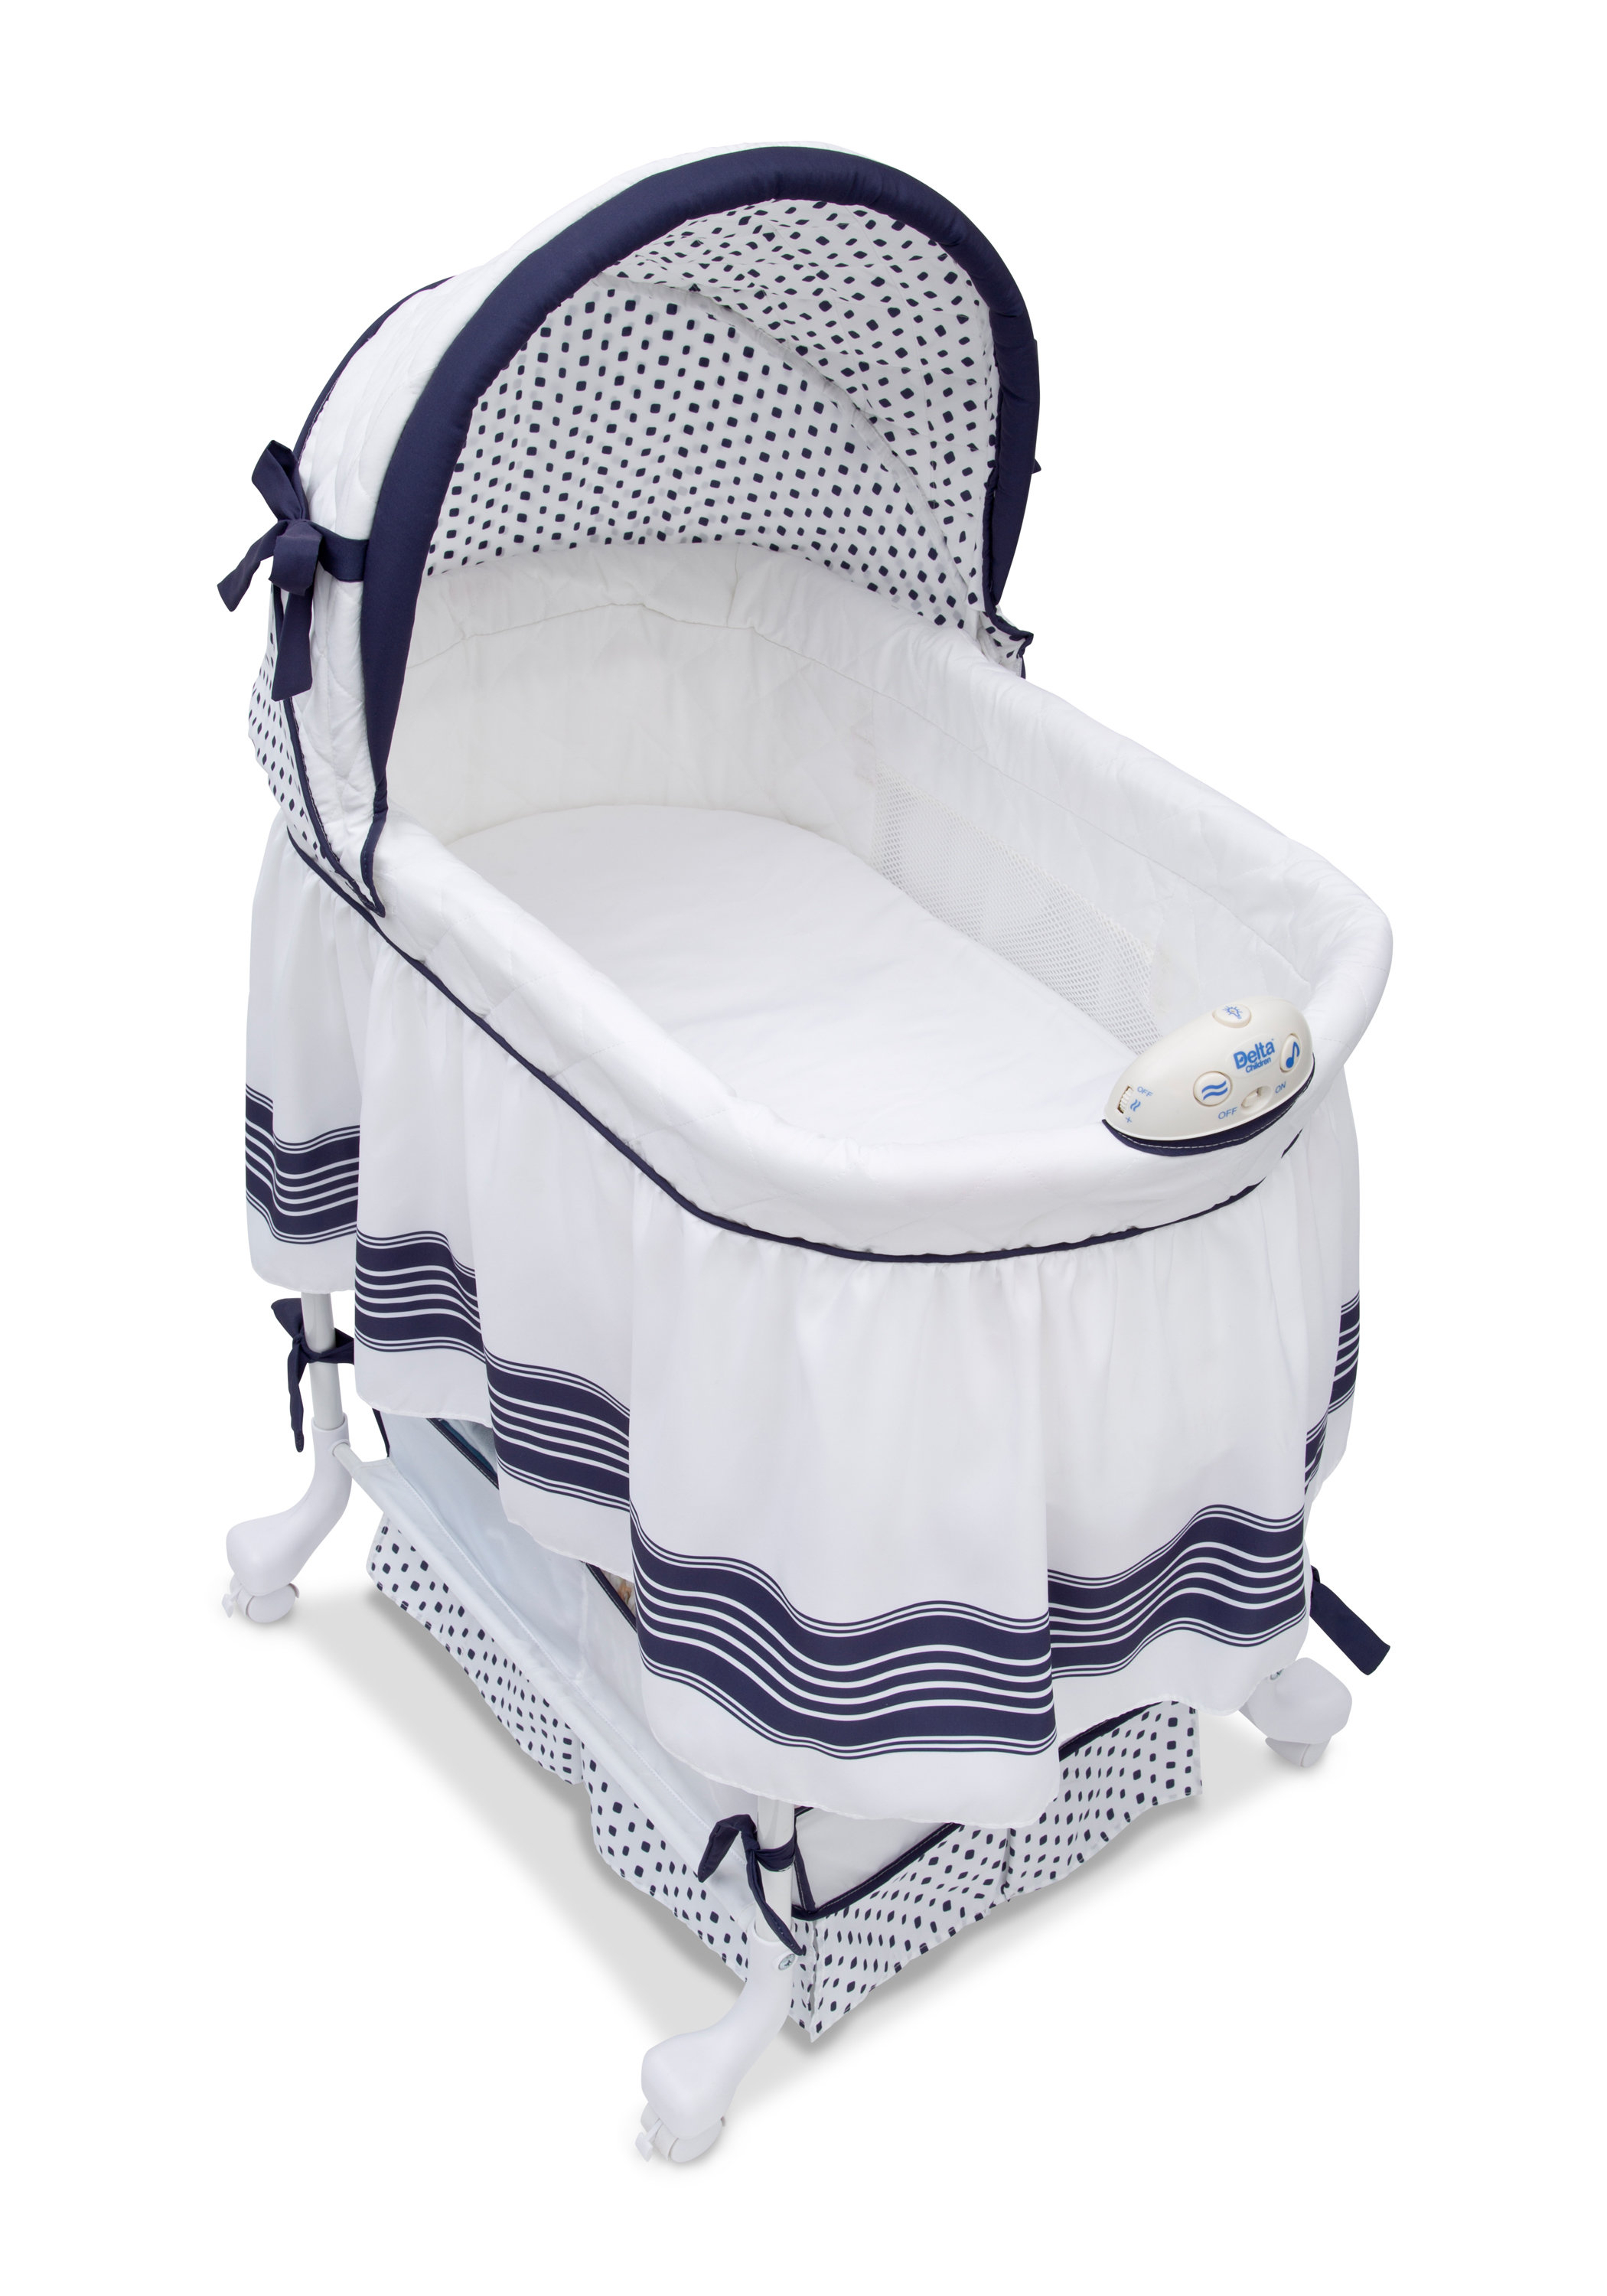 Delta Children Smooth Glide Bassinet & Reviews | Wayfair With Regard To Bailey Mist Track Arm Skirted Swivel Gliders (View 15 of 25)